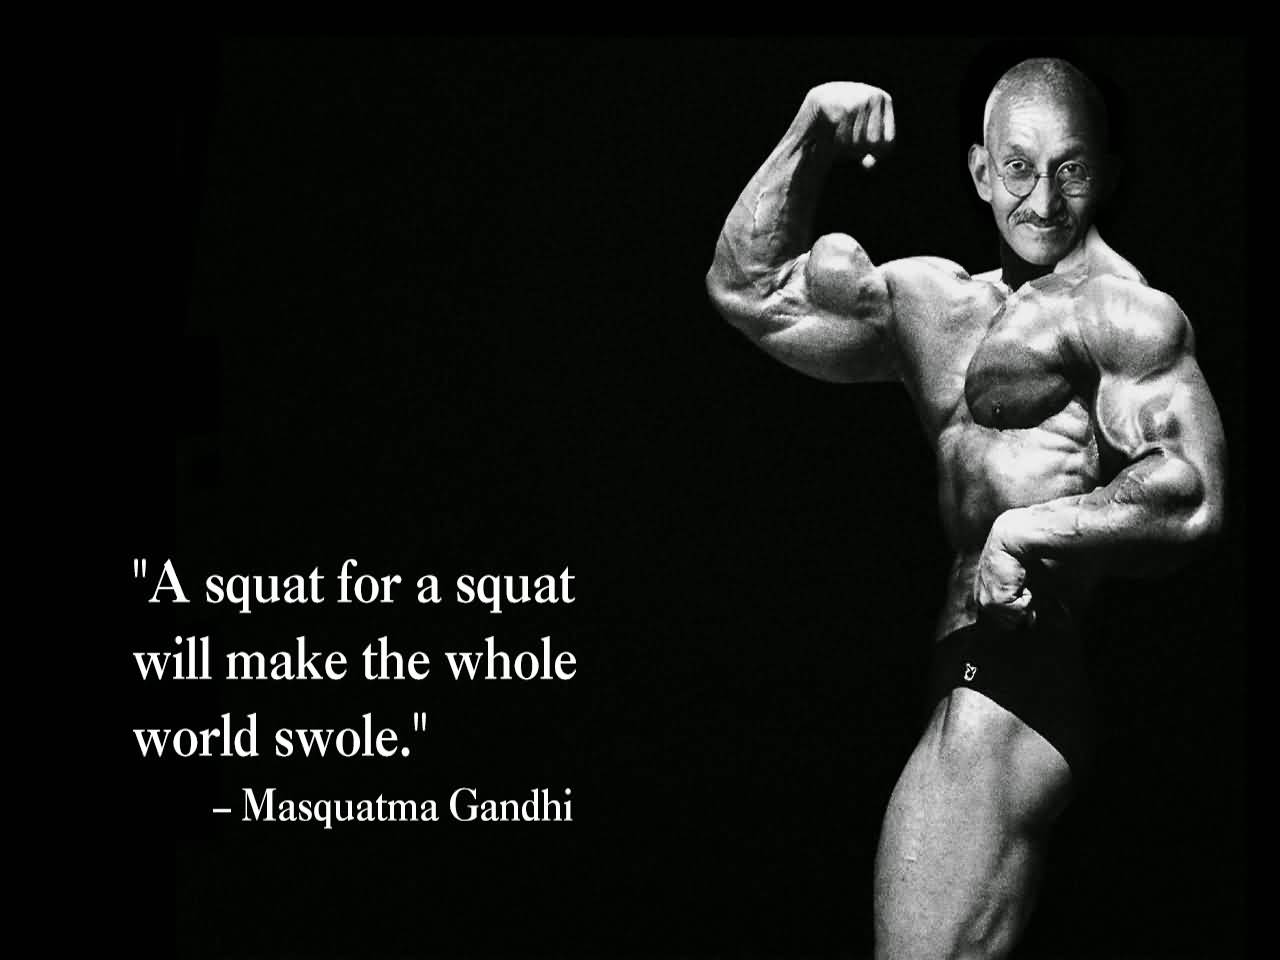 Fitness Sayings a squat for a squat will make the whole world sole.